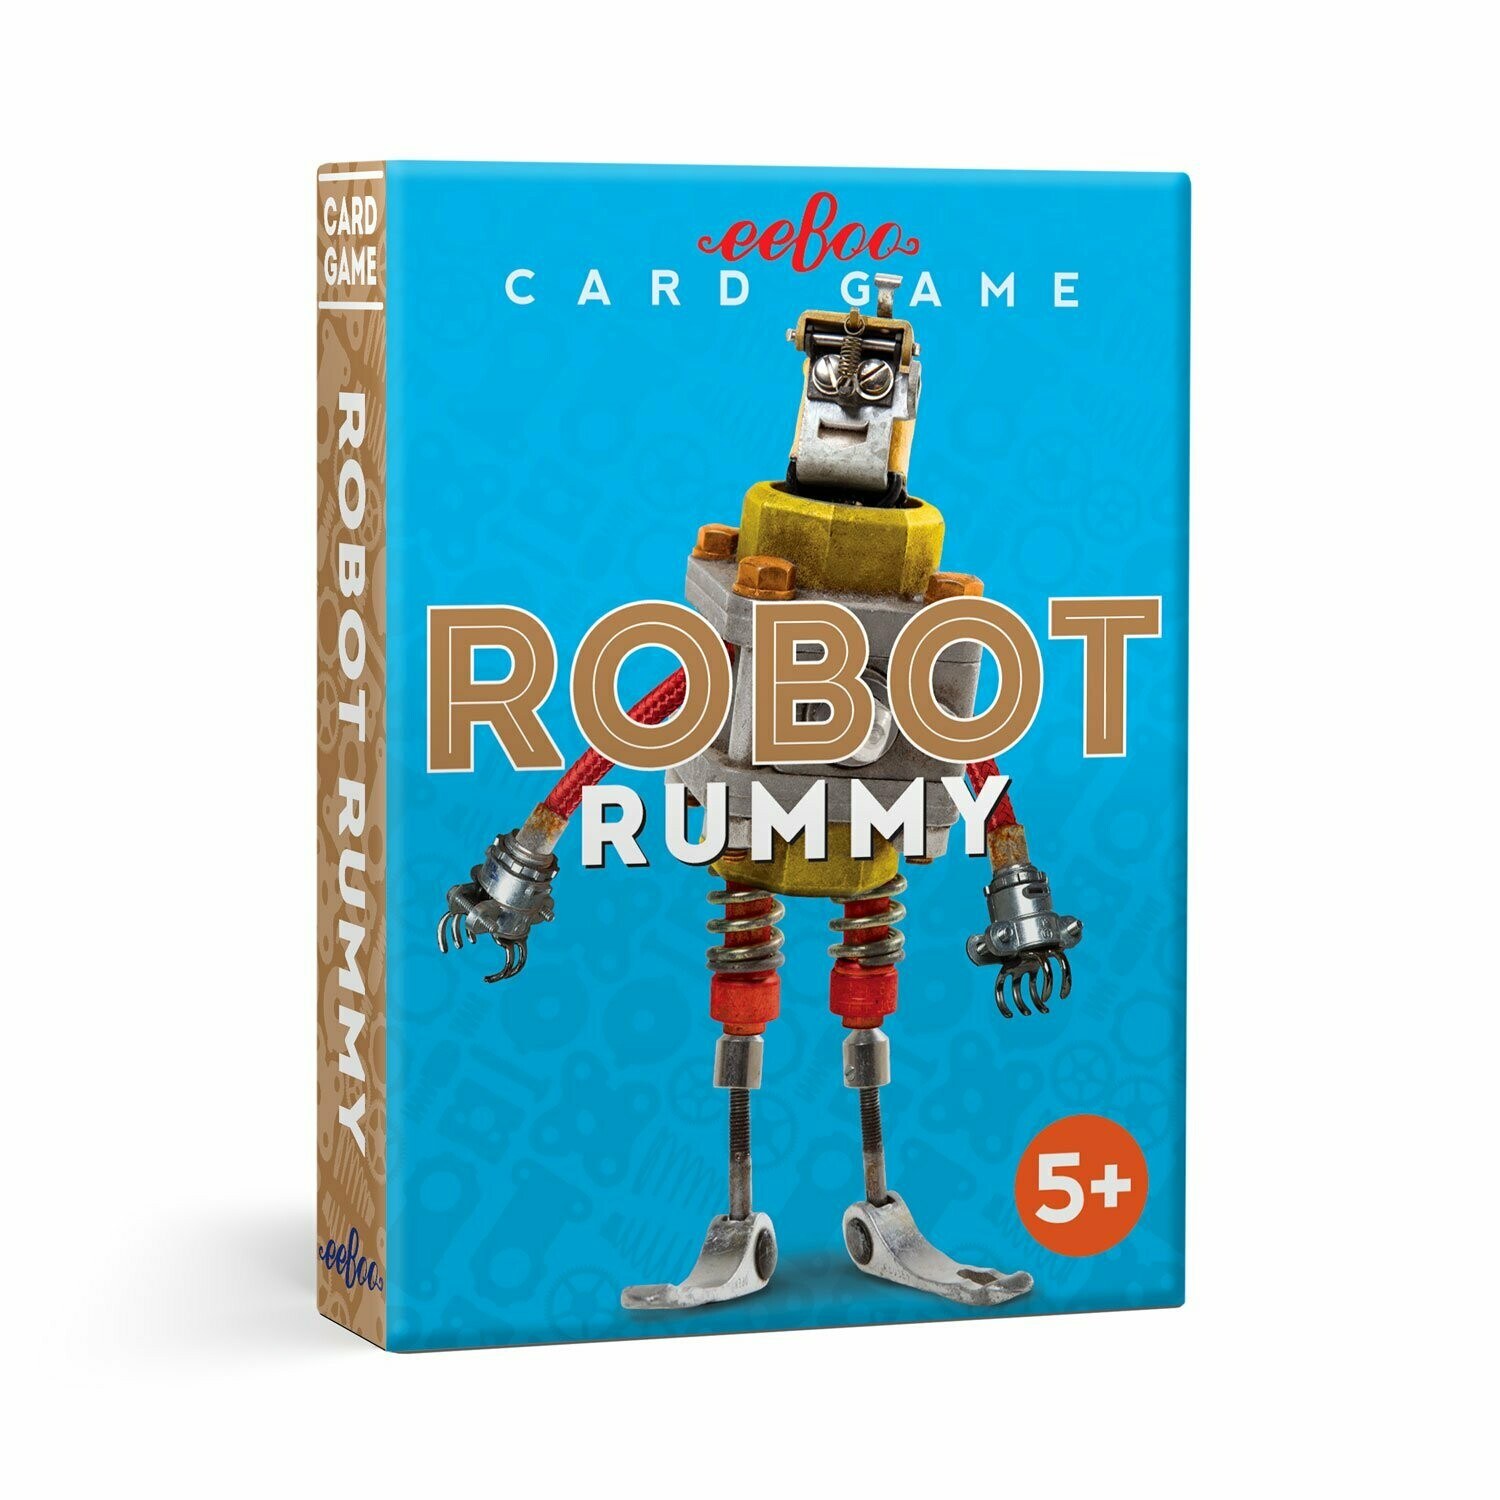 eeBoo Card Game Robot